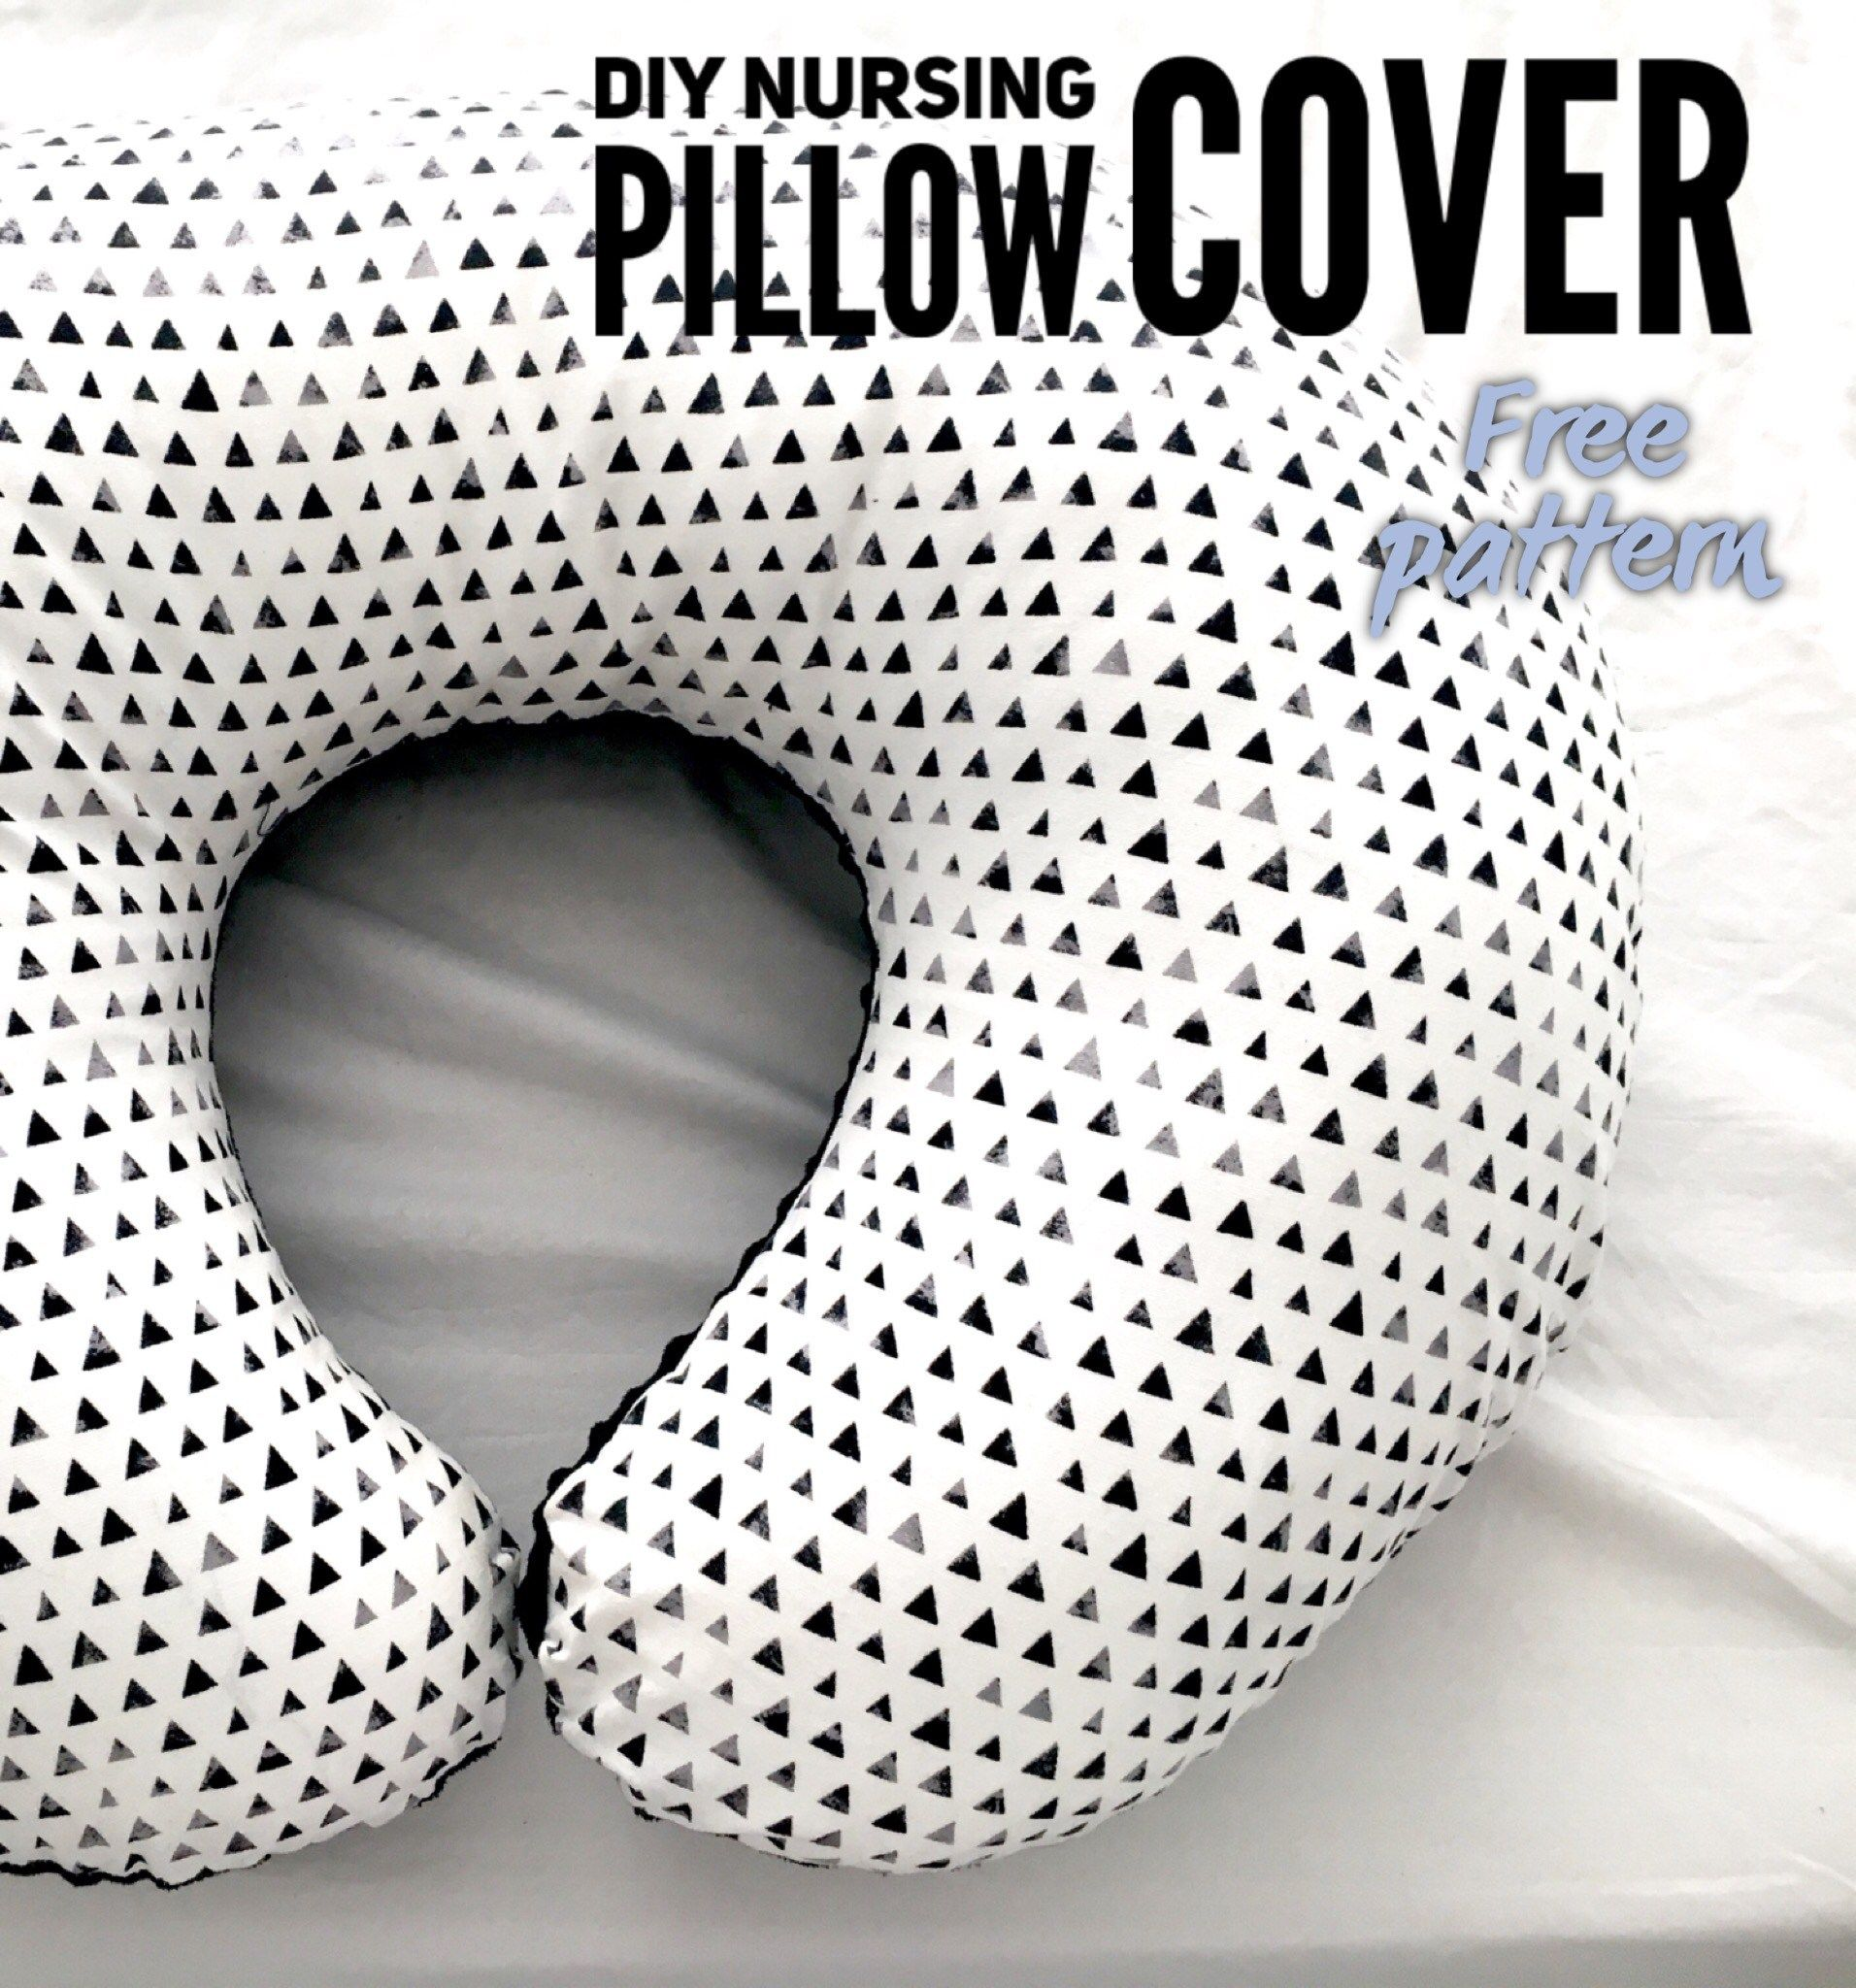 DIY Nursing Pillow Cover | For the kids | Pinterest | Sewing projects